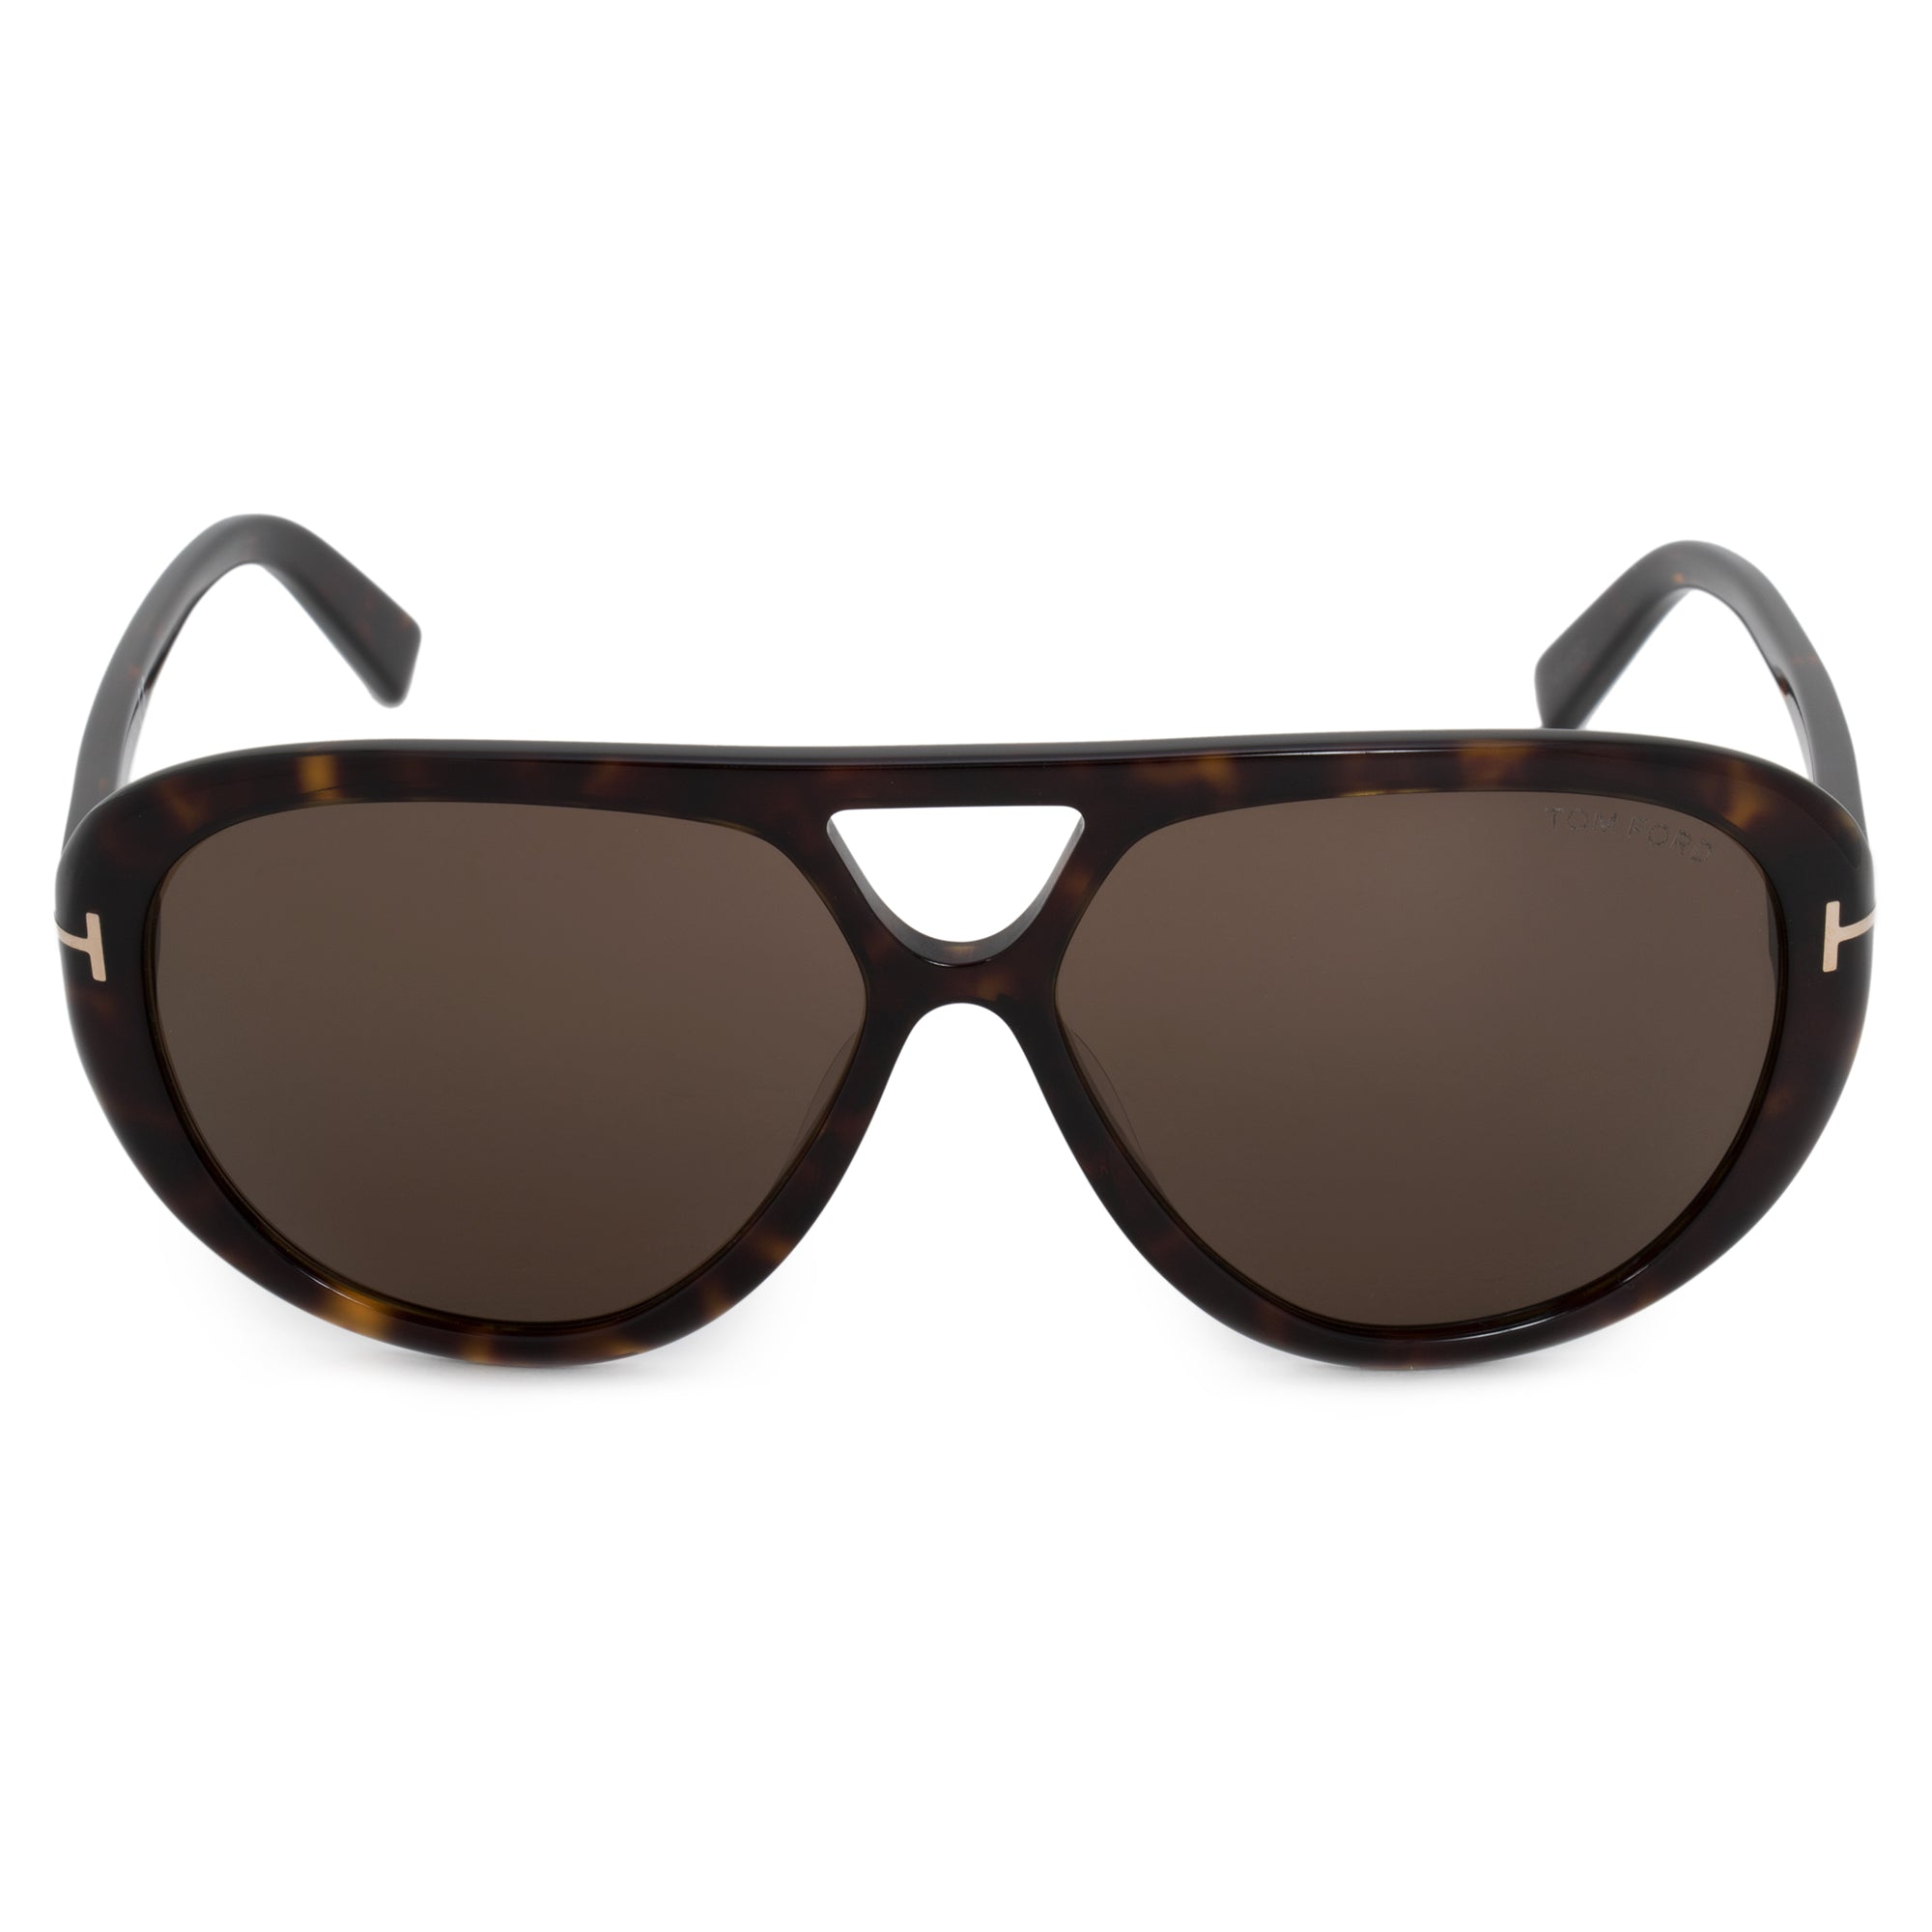 Tom Ford Marley Aviator Sunglasses FT0510 | Havana Acetate Frames | Brown Lenses